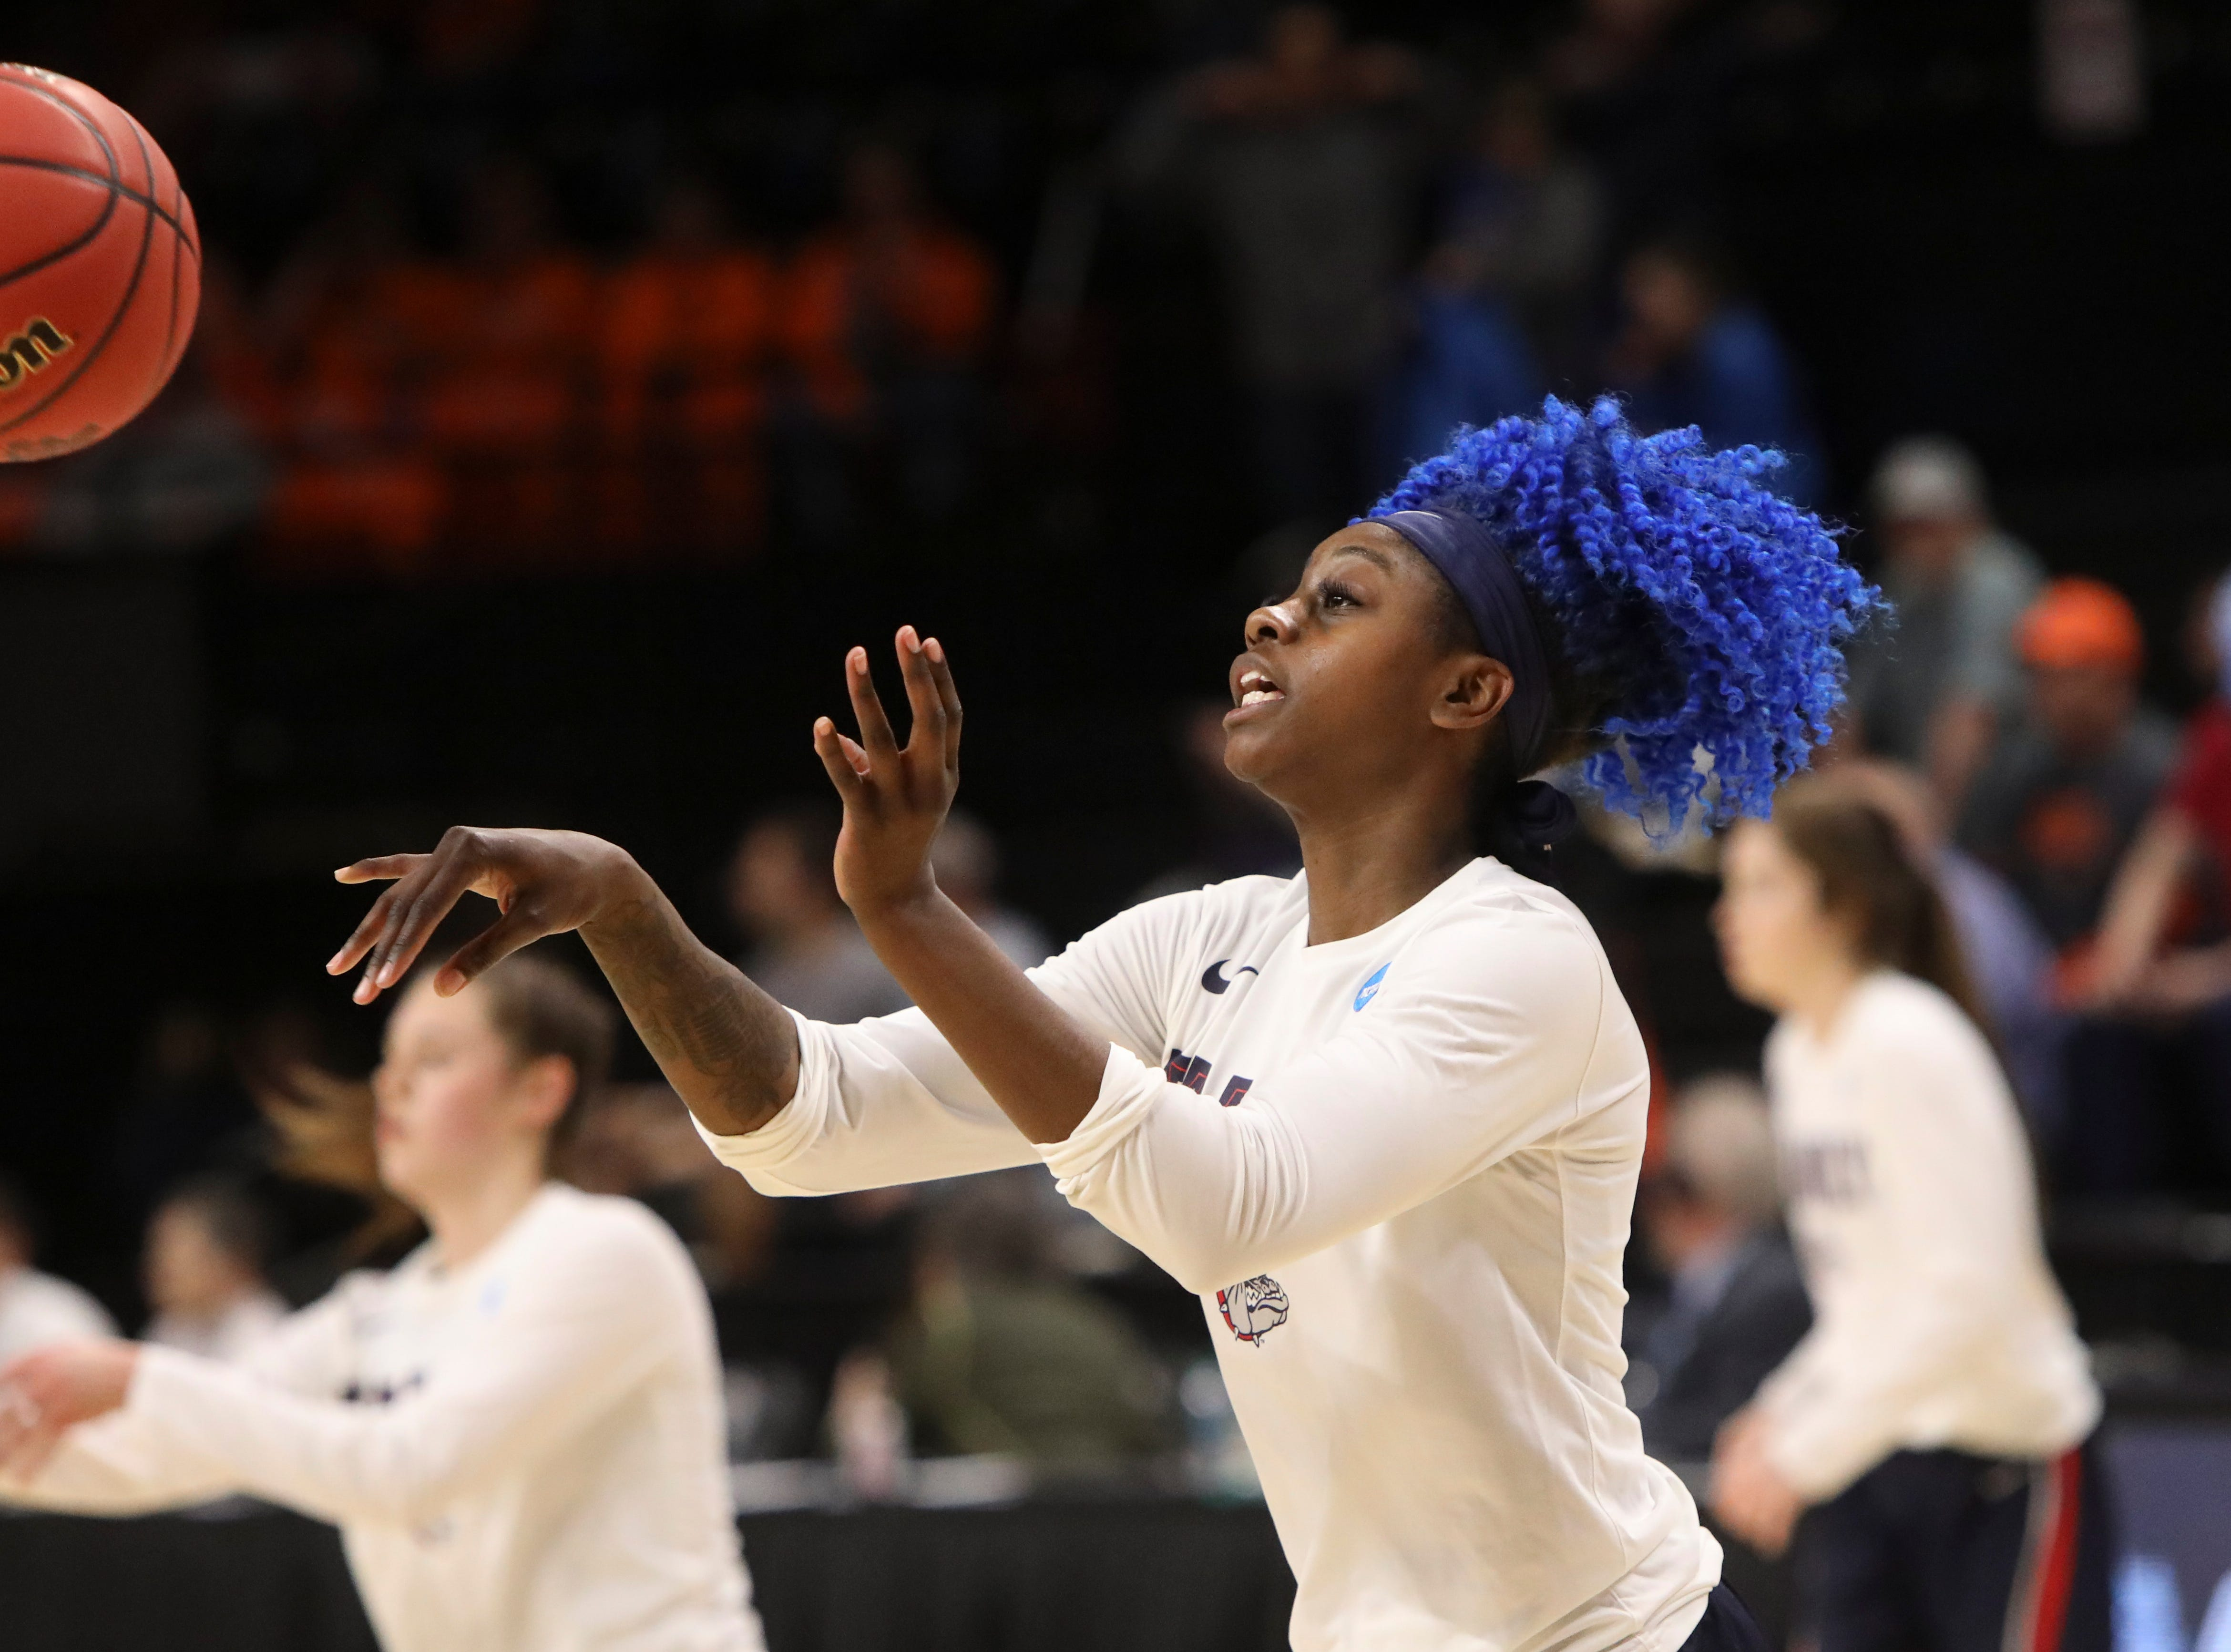 Gonzaga's Zykera Rice (00) warms up prior to the start of a second-round game of the NCAA women's college basketball tournament against Oregon State in Corvallis, Ore., Monday, March 25, 2019. Oregon State won 76-70 (AP Photo/Amanda Loman)